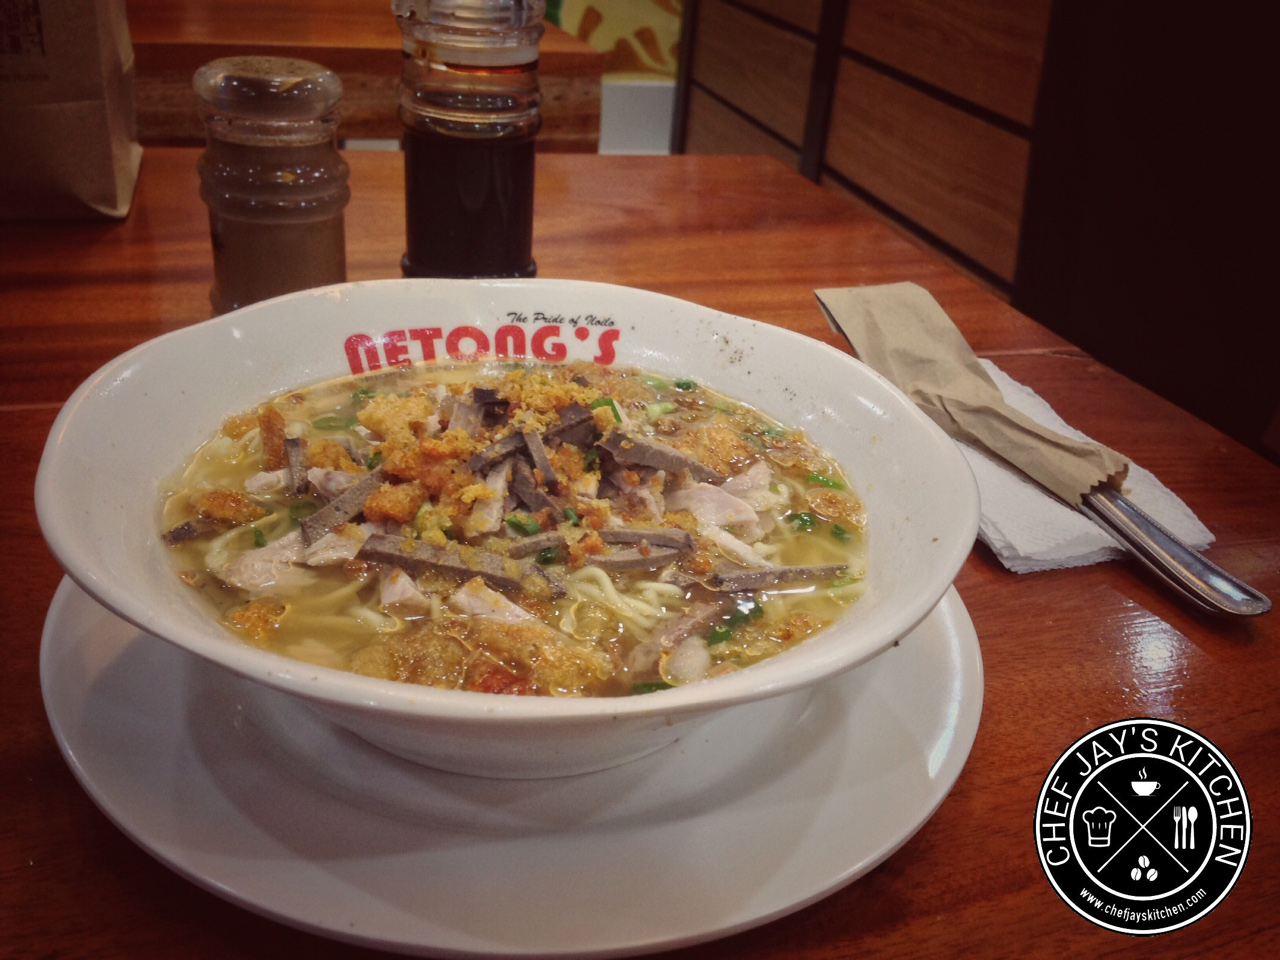 Netong's Is Now Serving Their Original Special Lapaz Batchoy at the Atria Park District